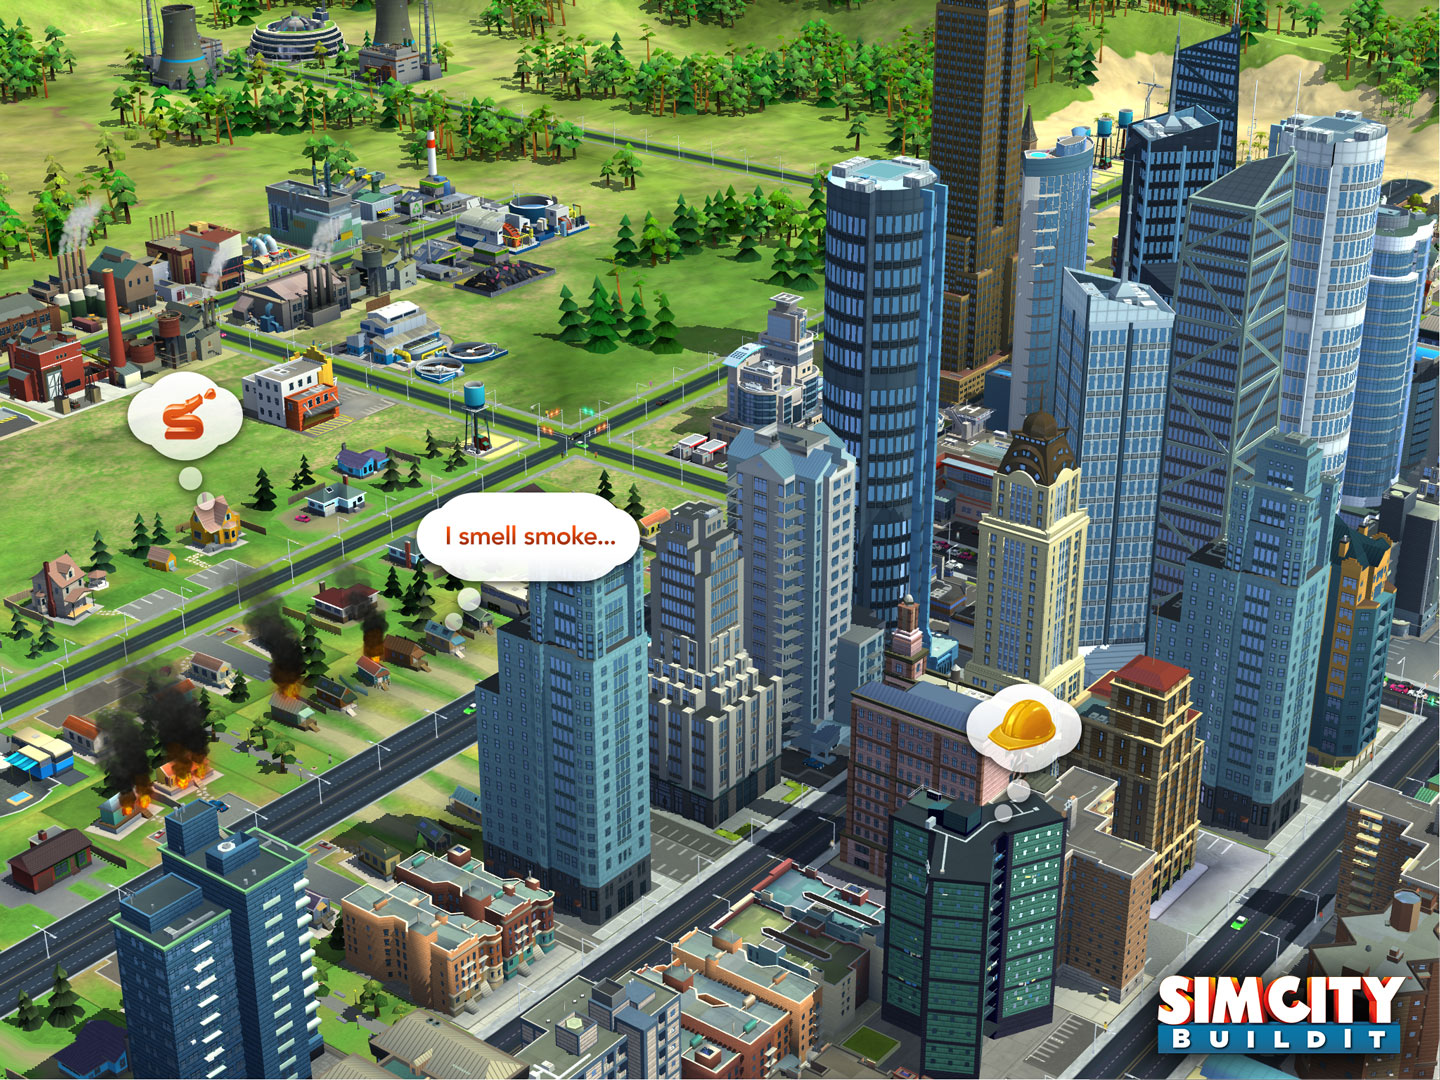 Top paying surveys 2013, how do i make more money in simcity